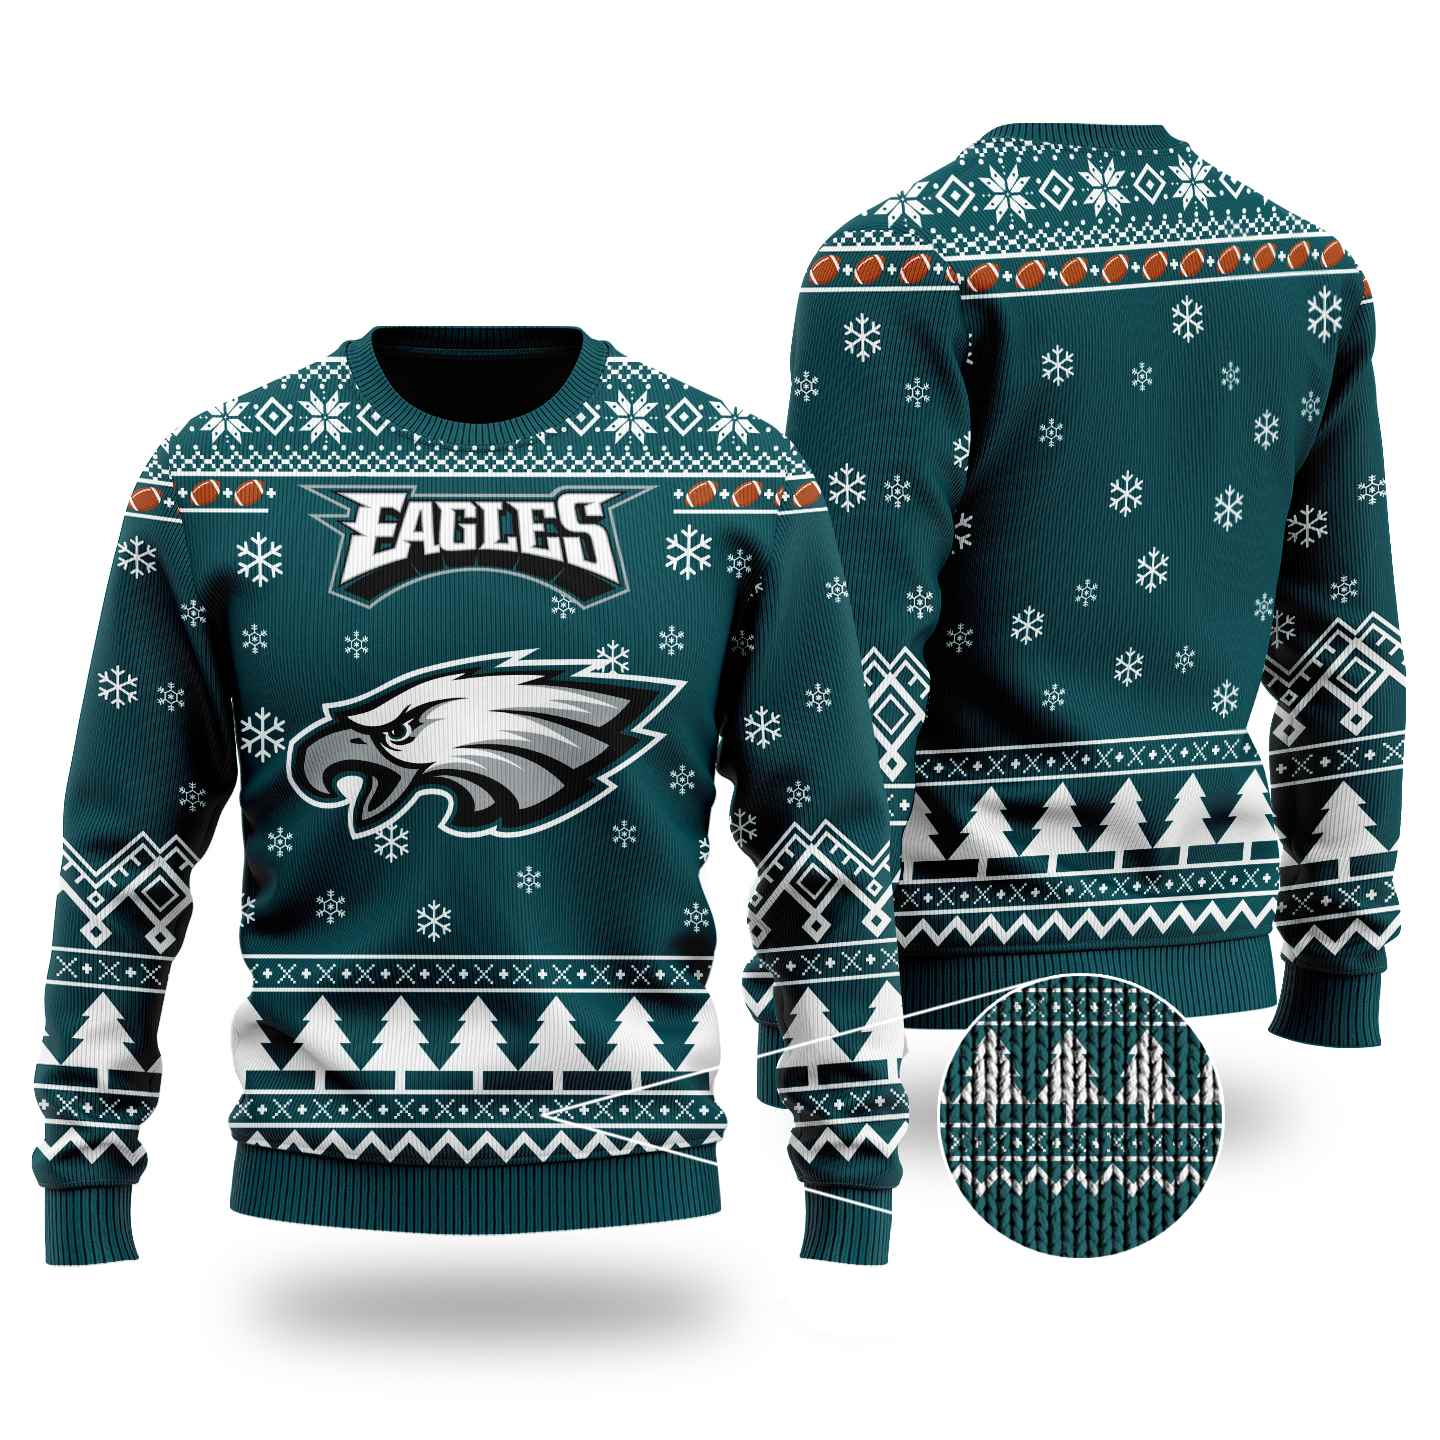 Nfl Philadelphia Eagles Chibi Ugly Christmas Sweater Wool Material